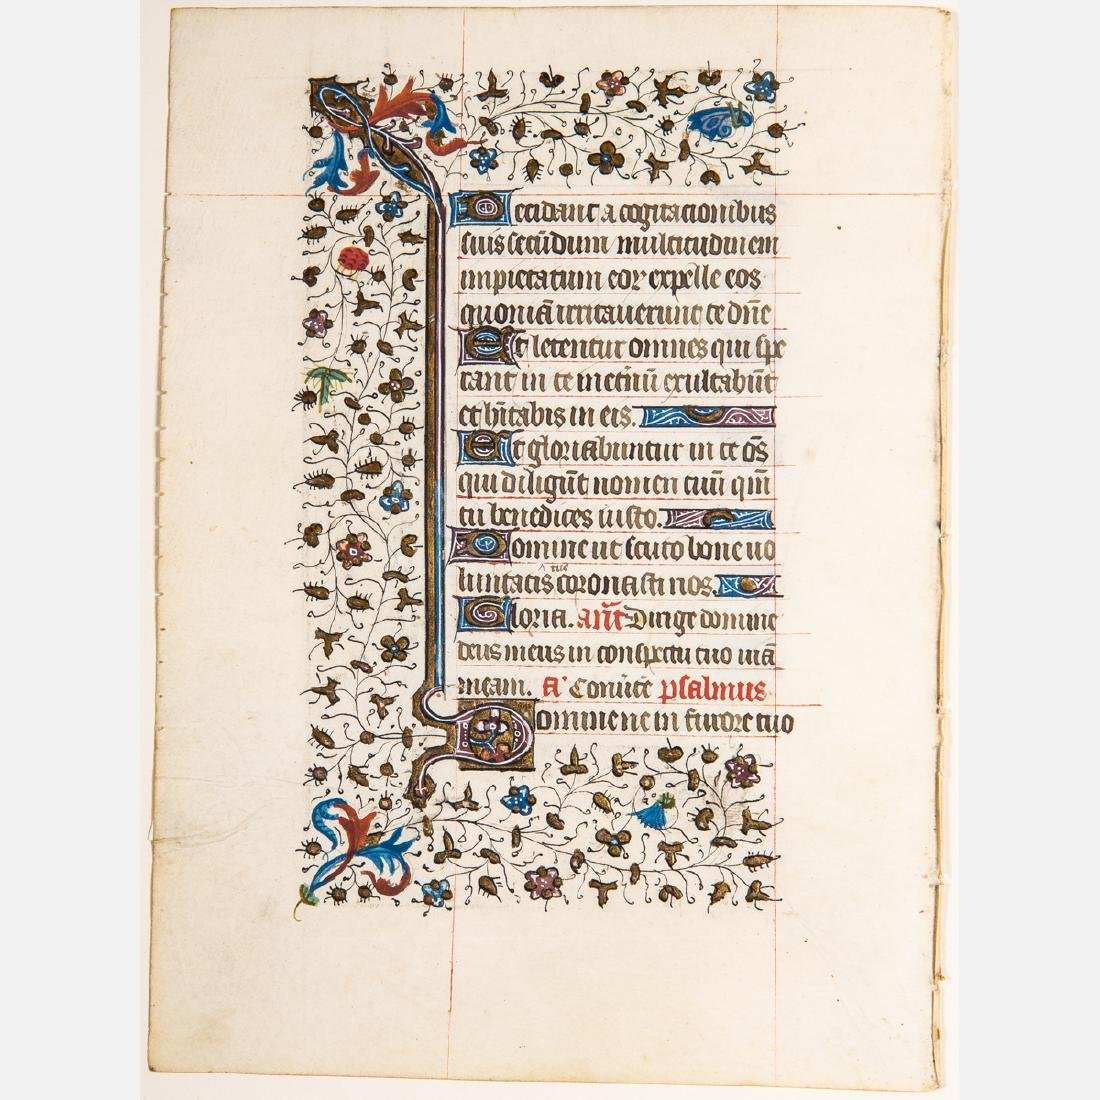 A French Illuminated Manuscript Leaf, ca. 1435 A.D.,